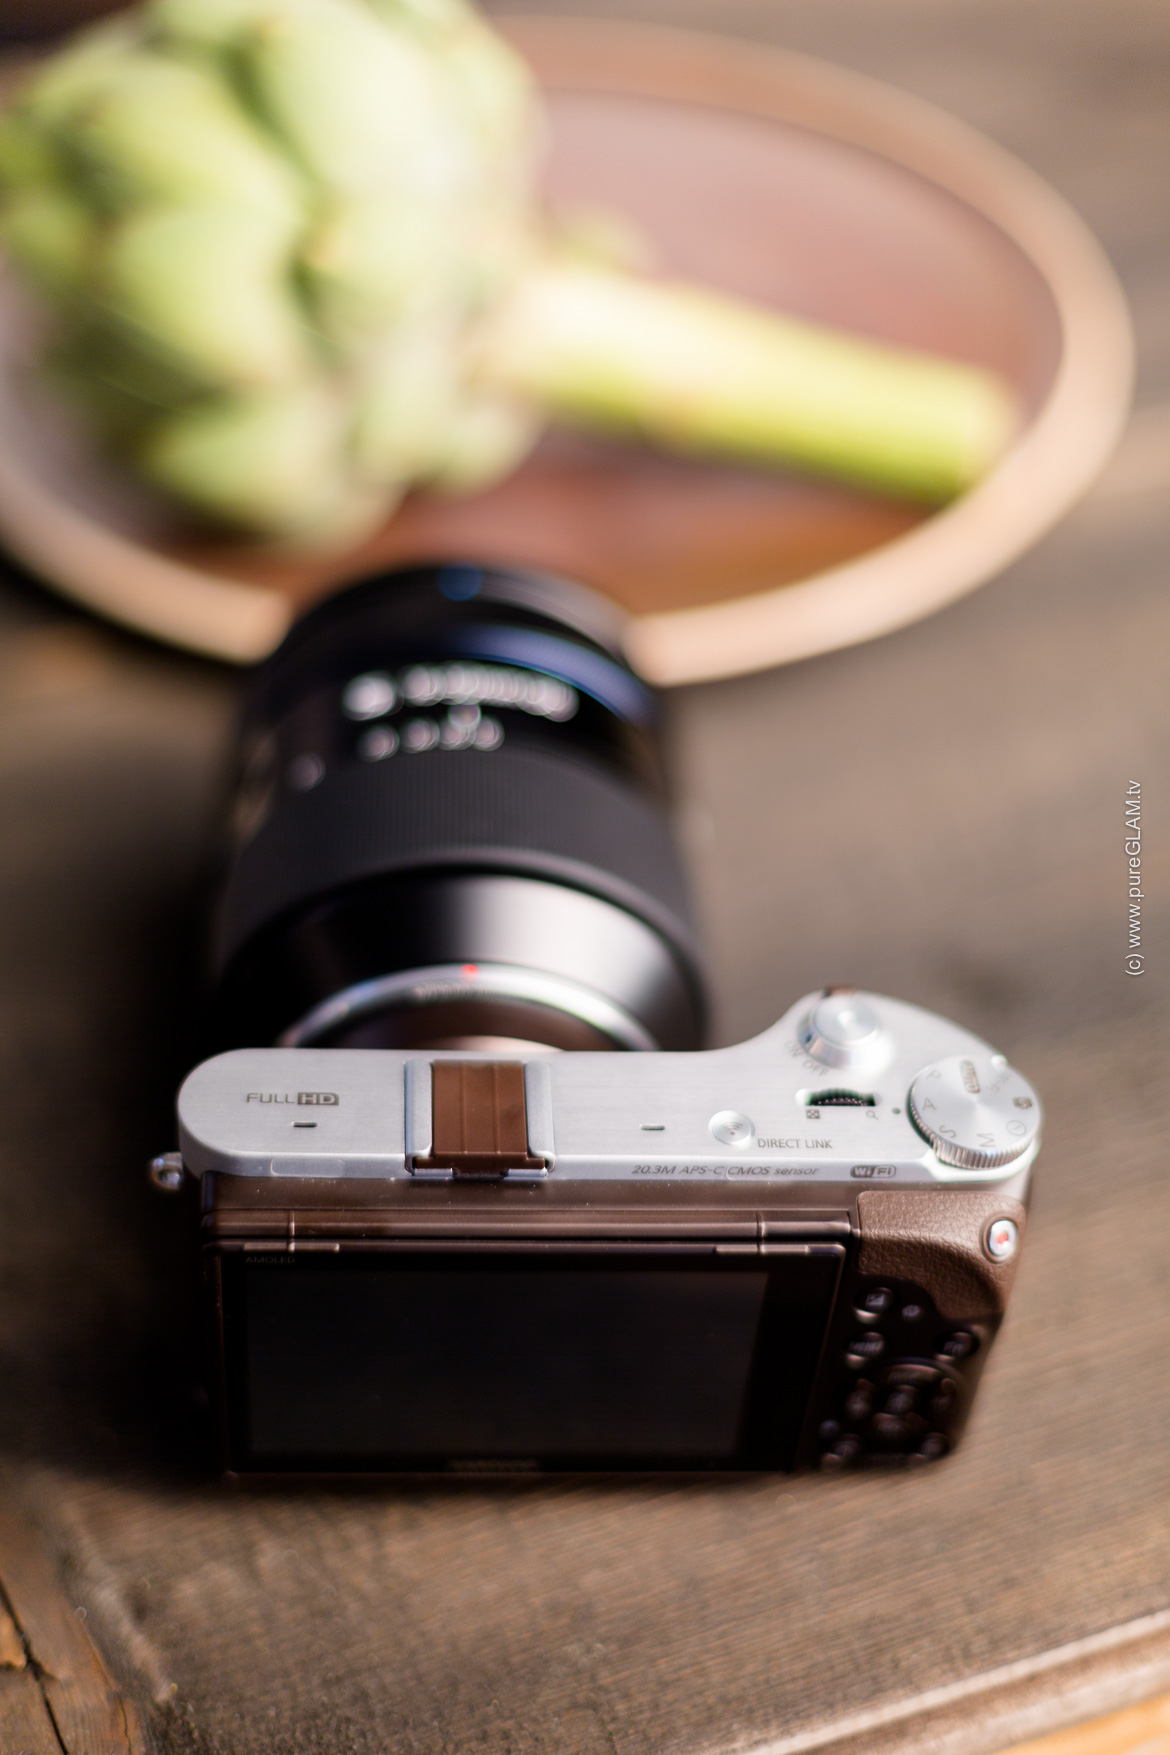 Food-Photography - Food and Smartphones, Foodblogger, Lifestyleblogger, Samsung Wearables und Smartphones für die Fotografie - Erlebnis-Workshop in München, Lifestyle-Blog